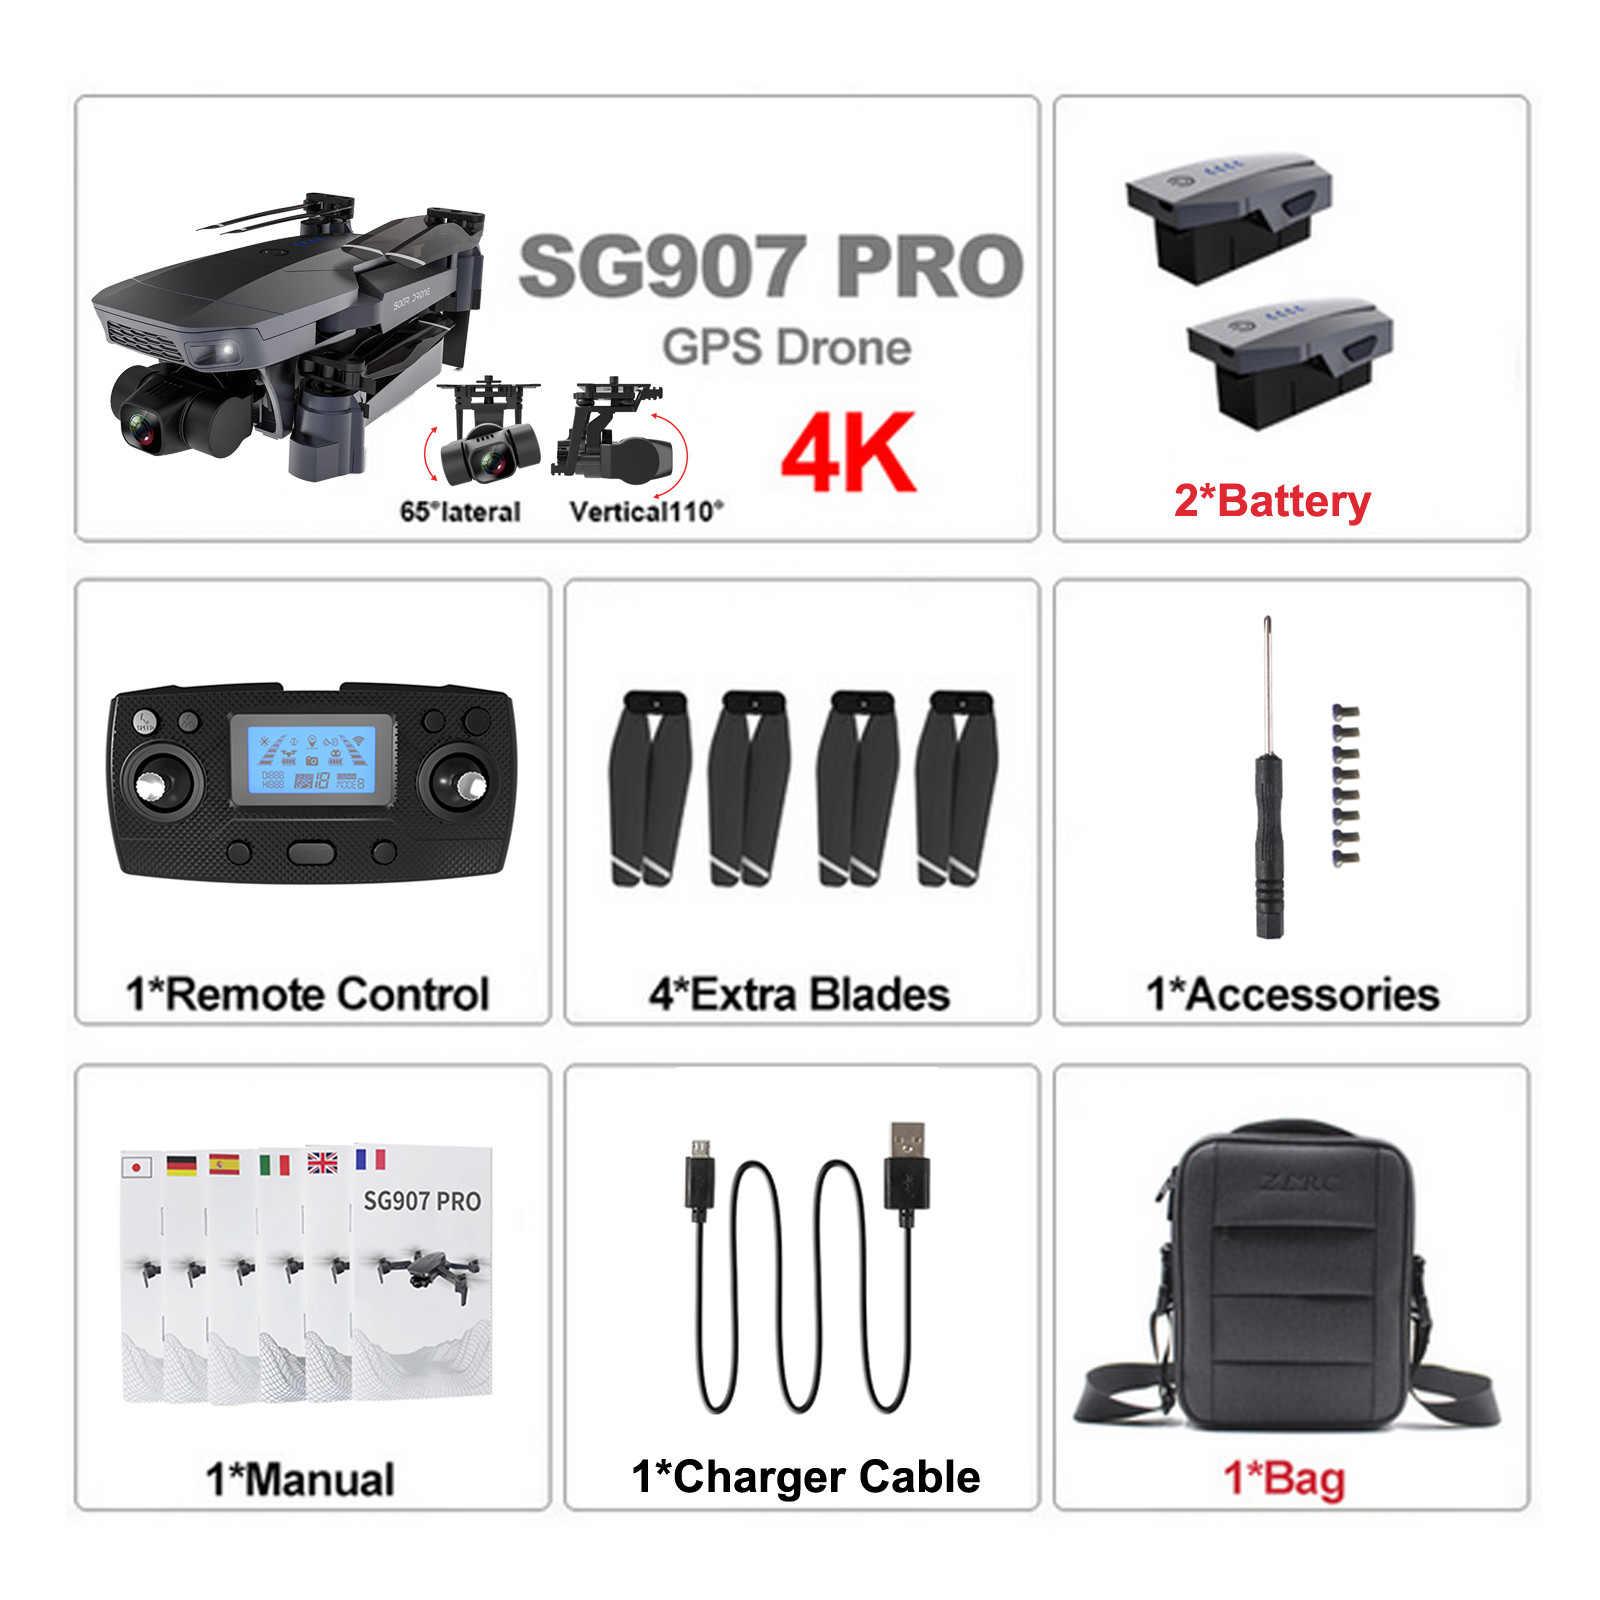 Hed7673f16726459eb494f6bb8c1ae3aae - 2020 New Sg907 Pro 5g Wifi Drone 2-axis Gimbal 4k Camera Wifi Gps Rc Drone Toy Rc Four-axis Professional Folding Camera Drones